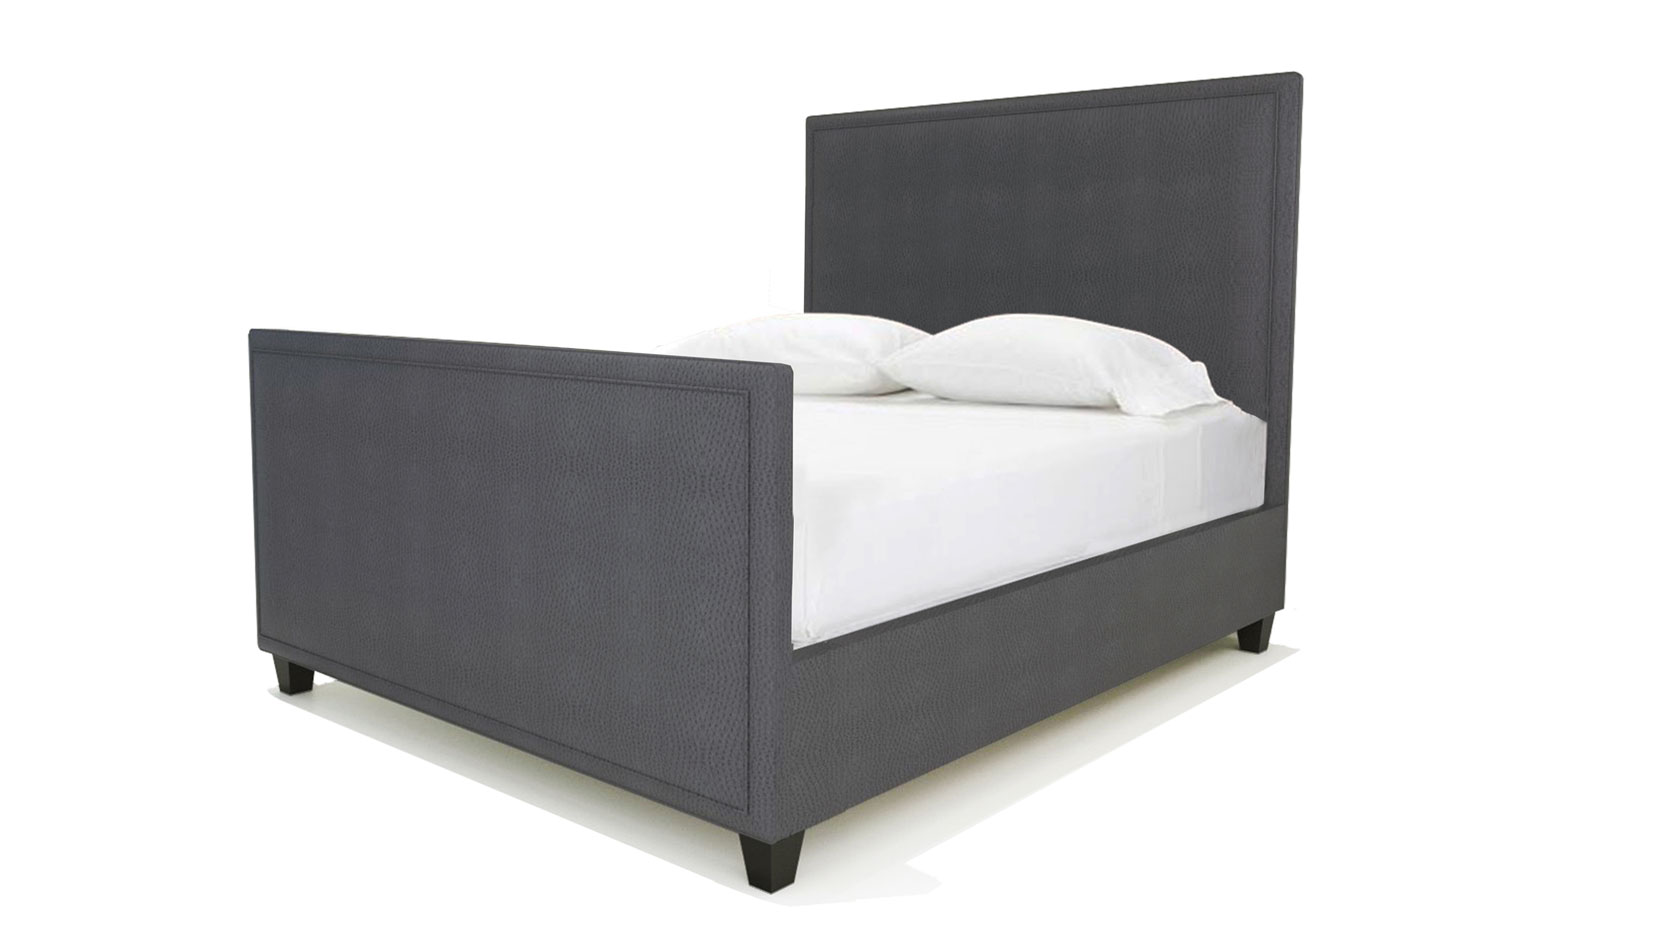 carlisle all-upholstered bed